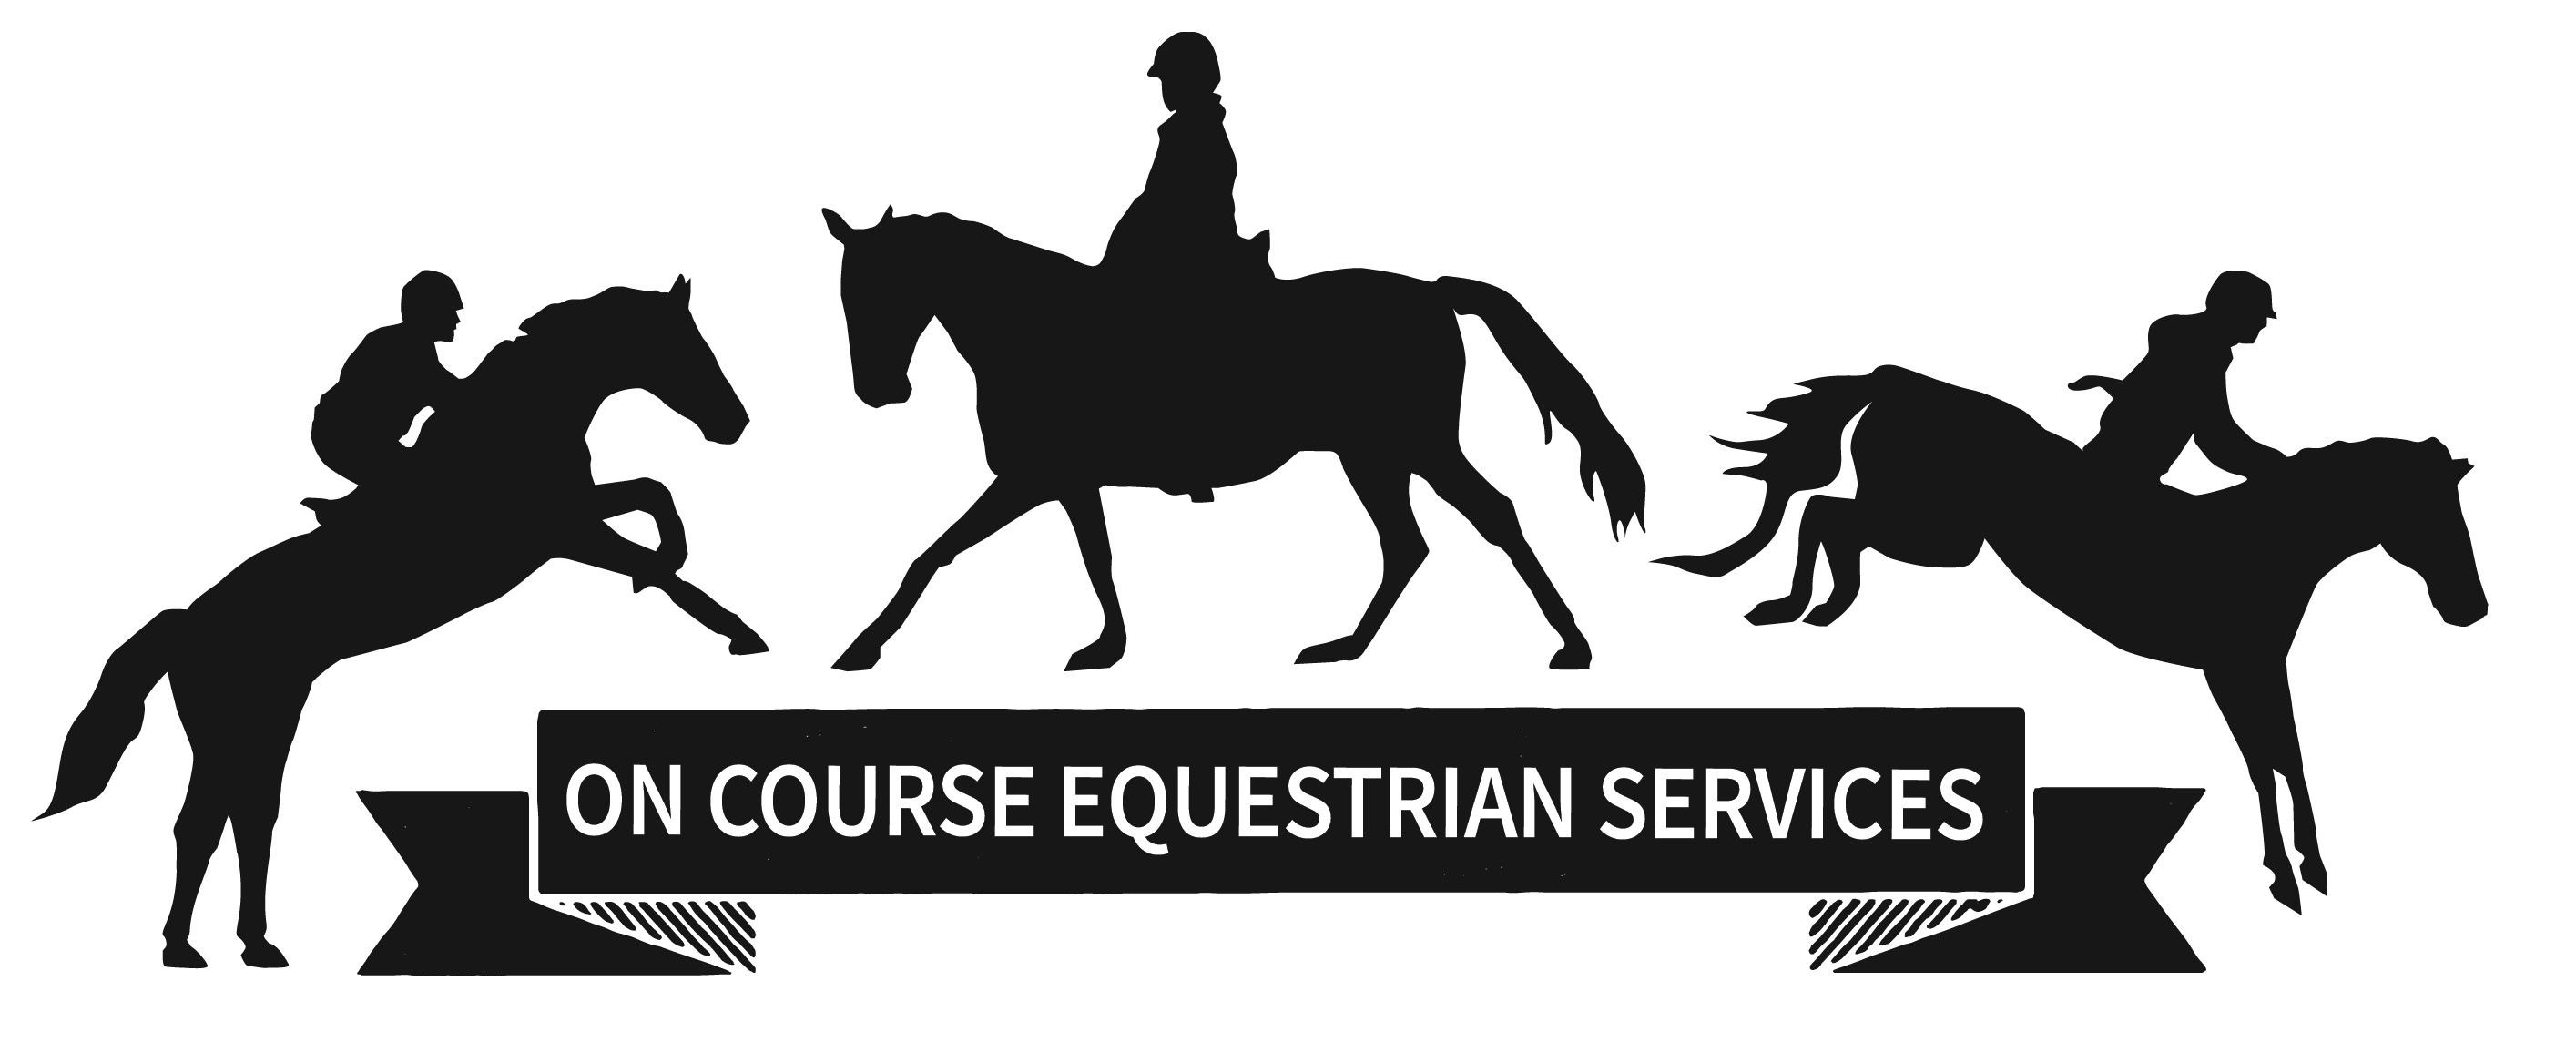 On Course Equestrian Services